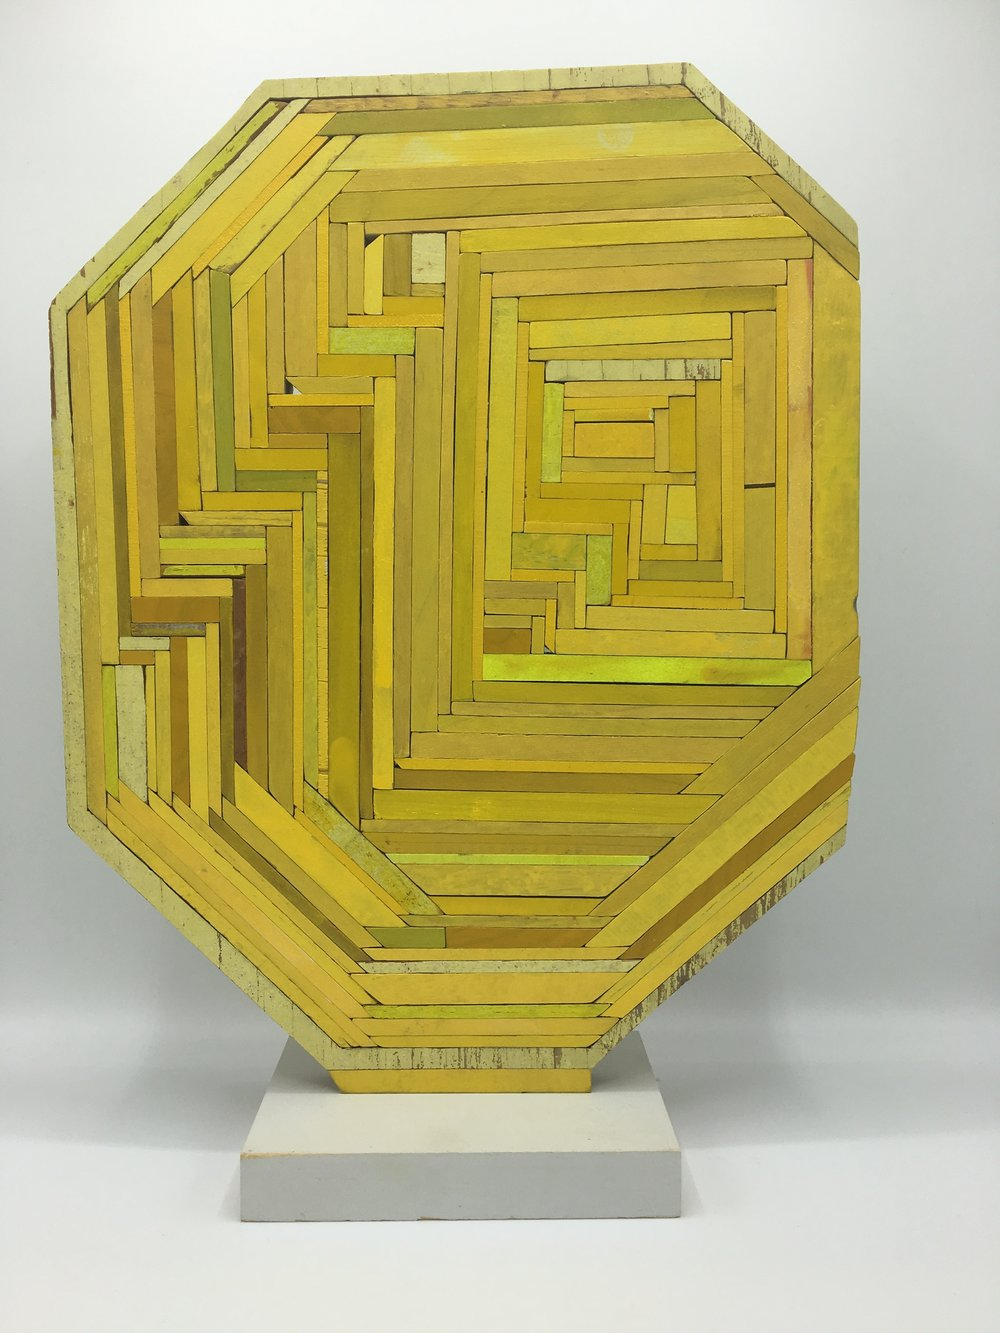 Yellow One, 2017 Wood, Paint, Glue 16 x 12 x 4 in